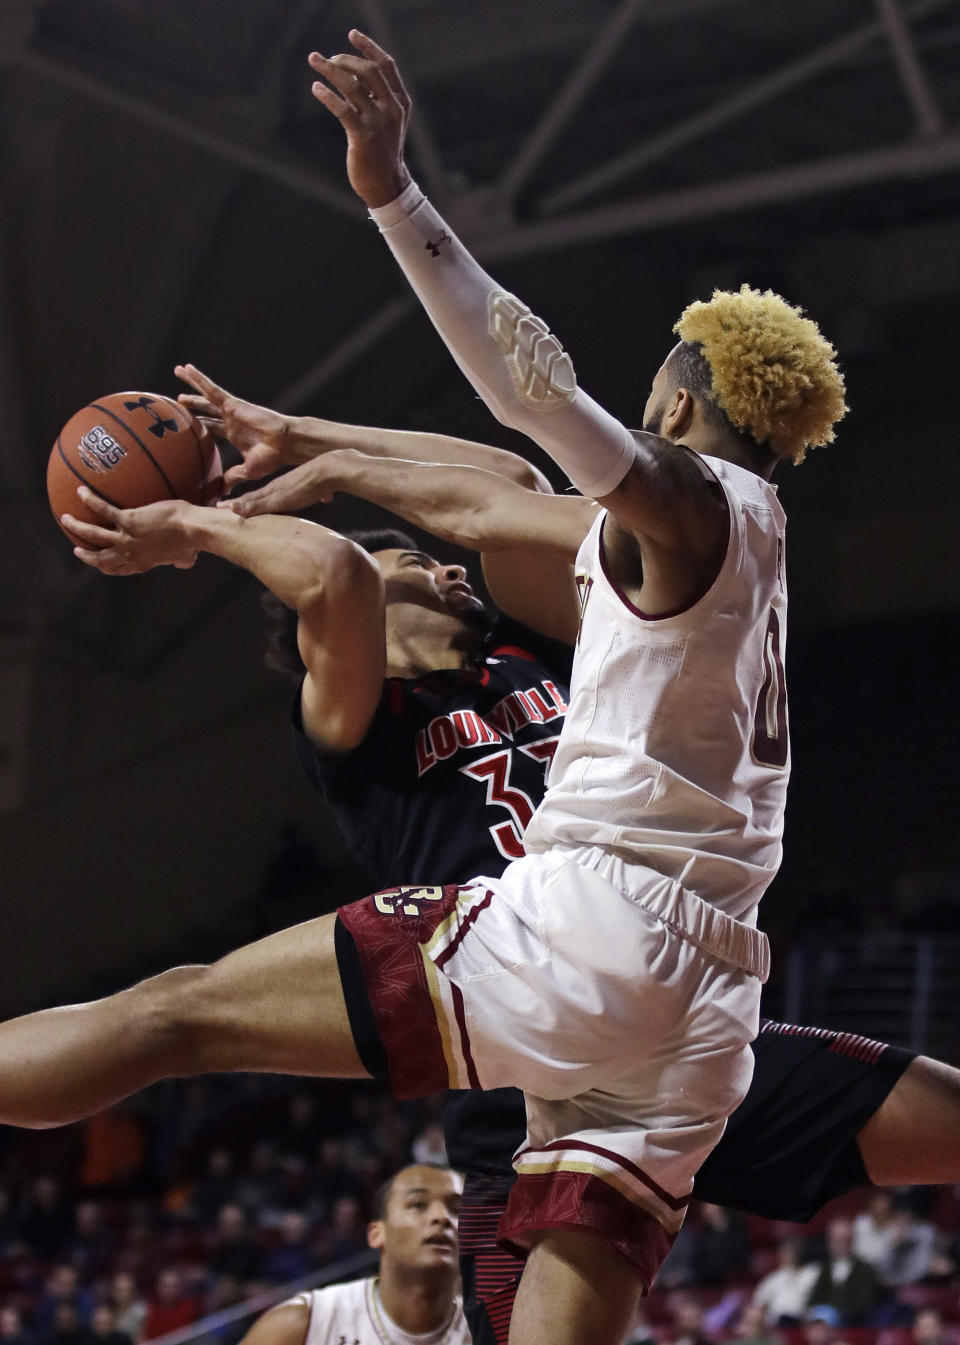 Boston College guard Ky Bowman, right, blocks a shot by Louisville forward Jordan Nwora, left, during the first half of an NCAA college basketball game in Boston, Wednesday, Feb. 27, 2019. (AP Photo/Charles Krupa)